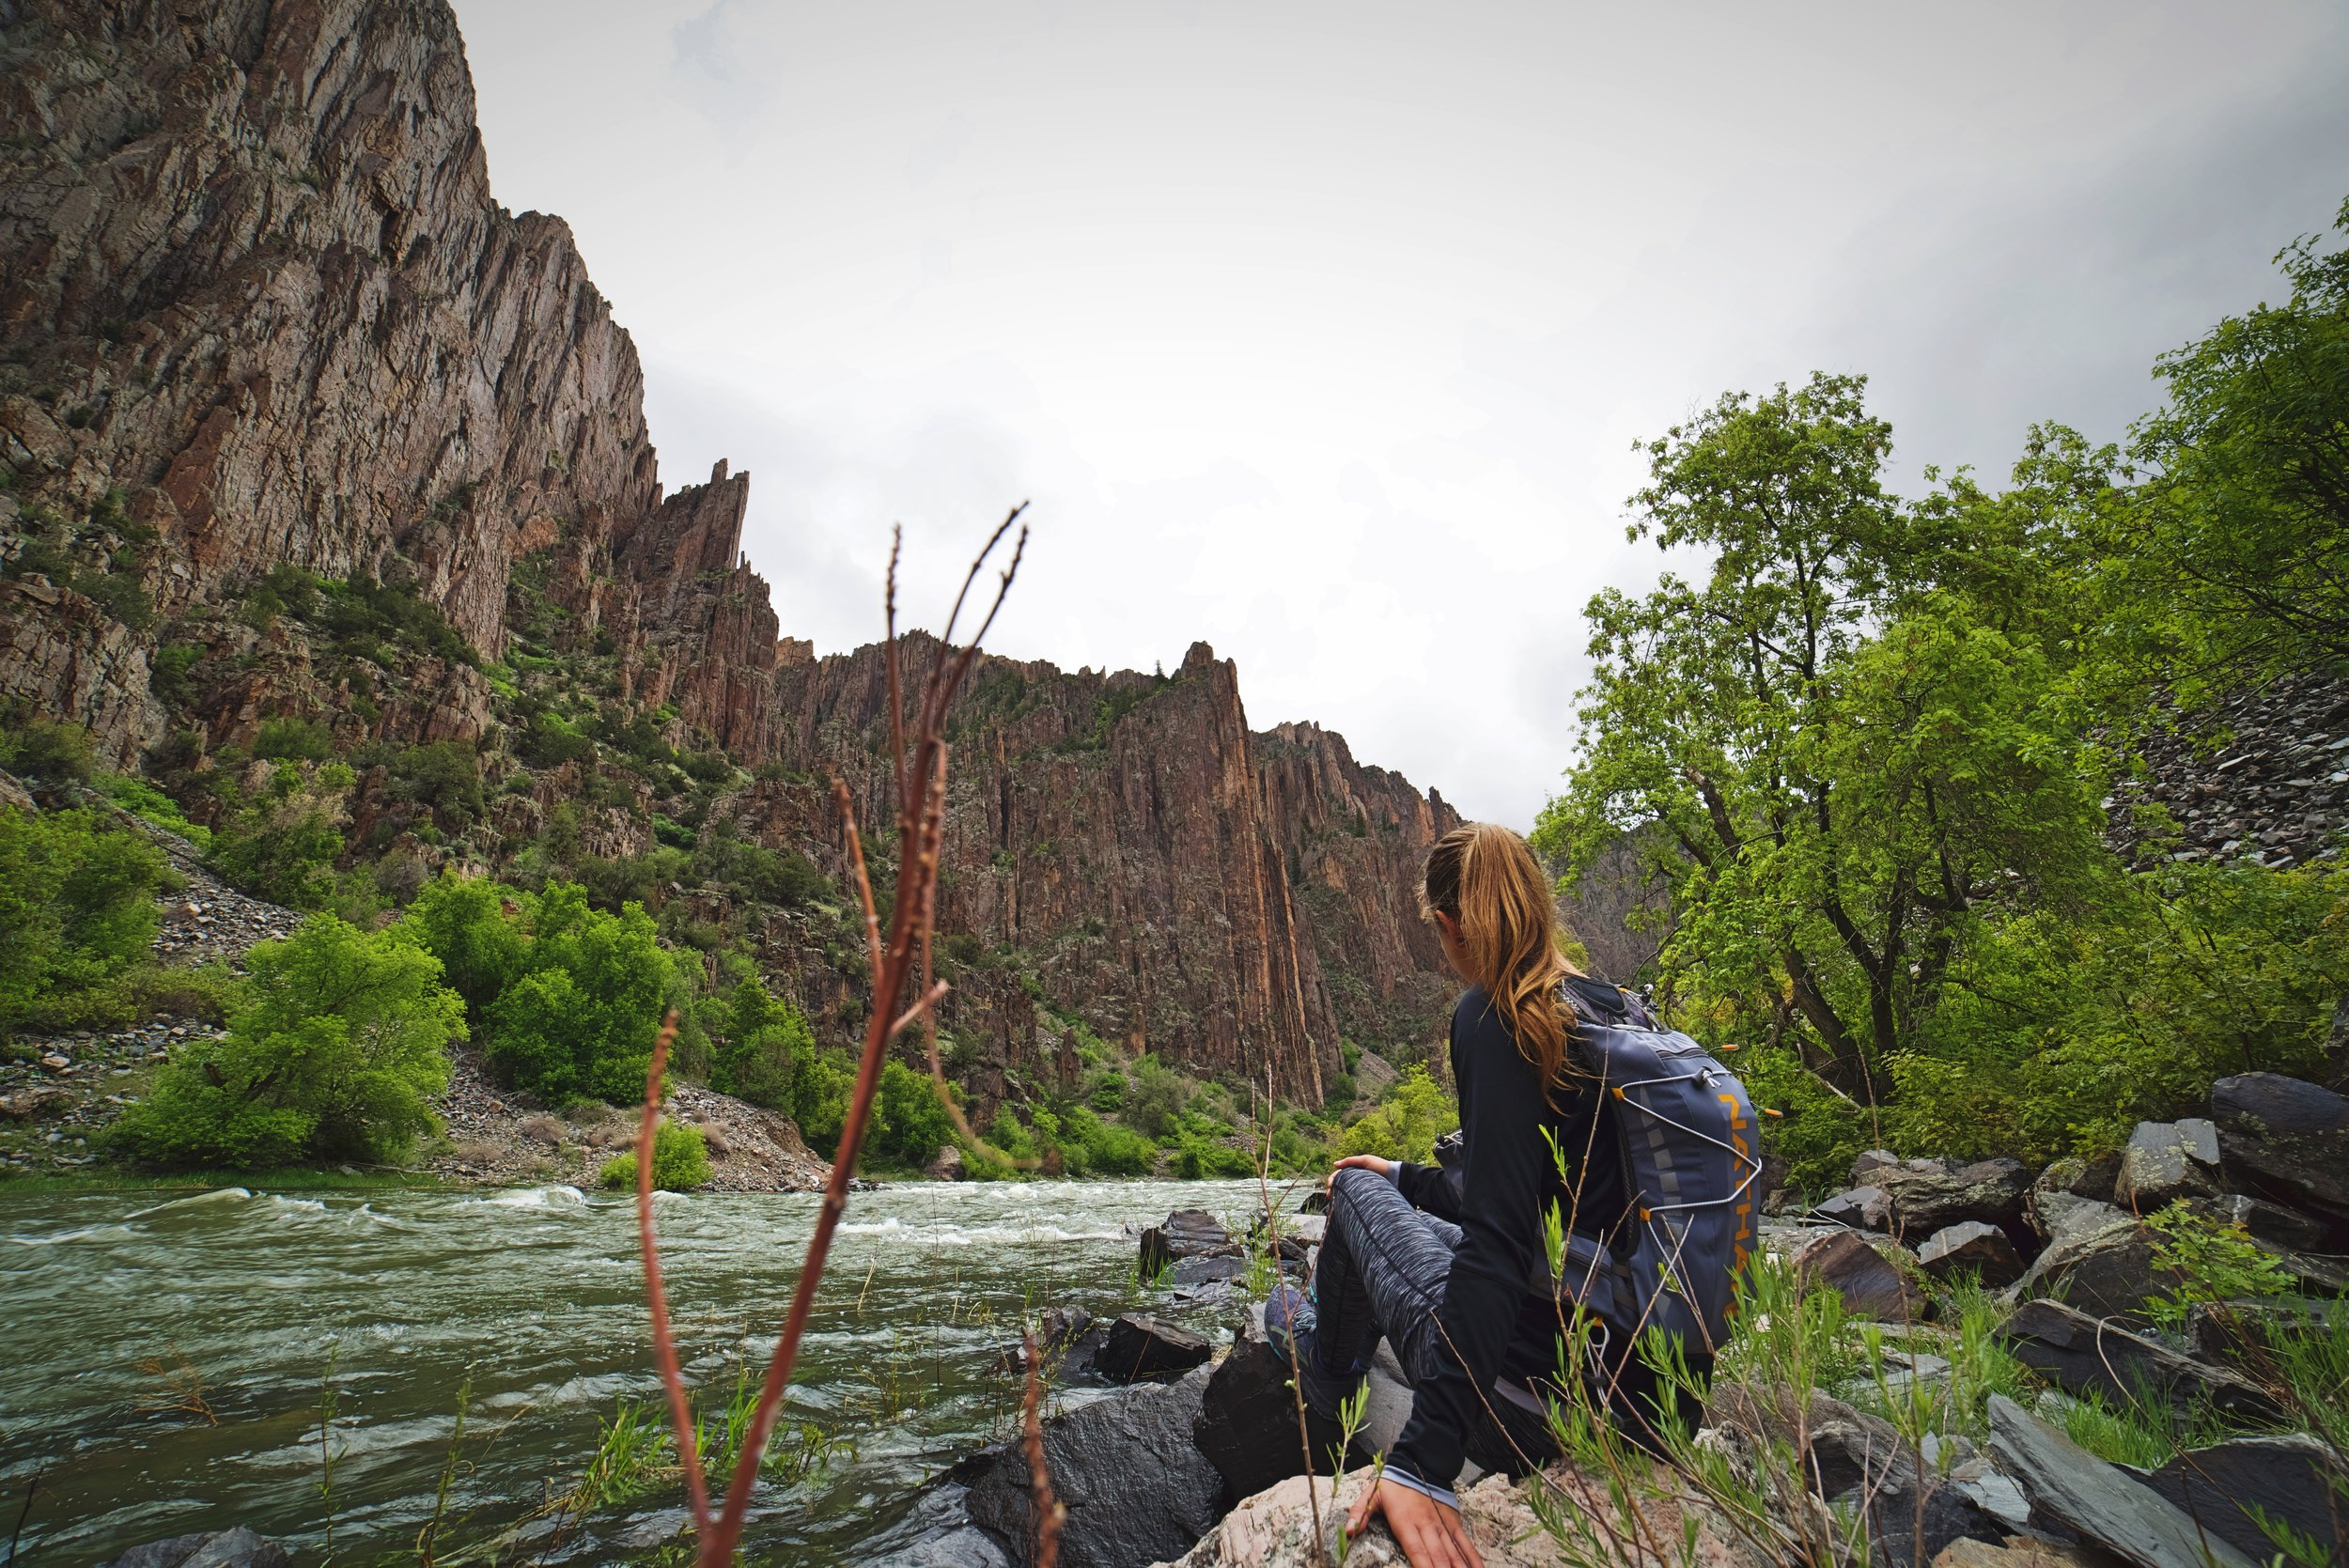 Because the Gunnison River was so high that we couldn't walk very far on the canyon floor.